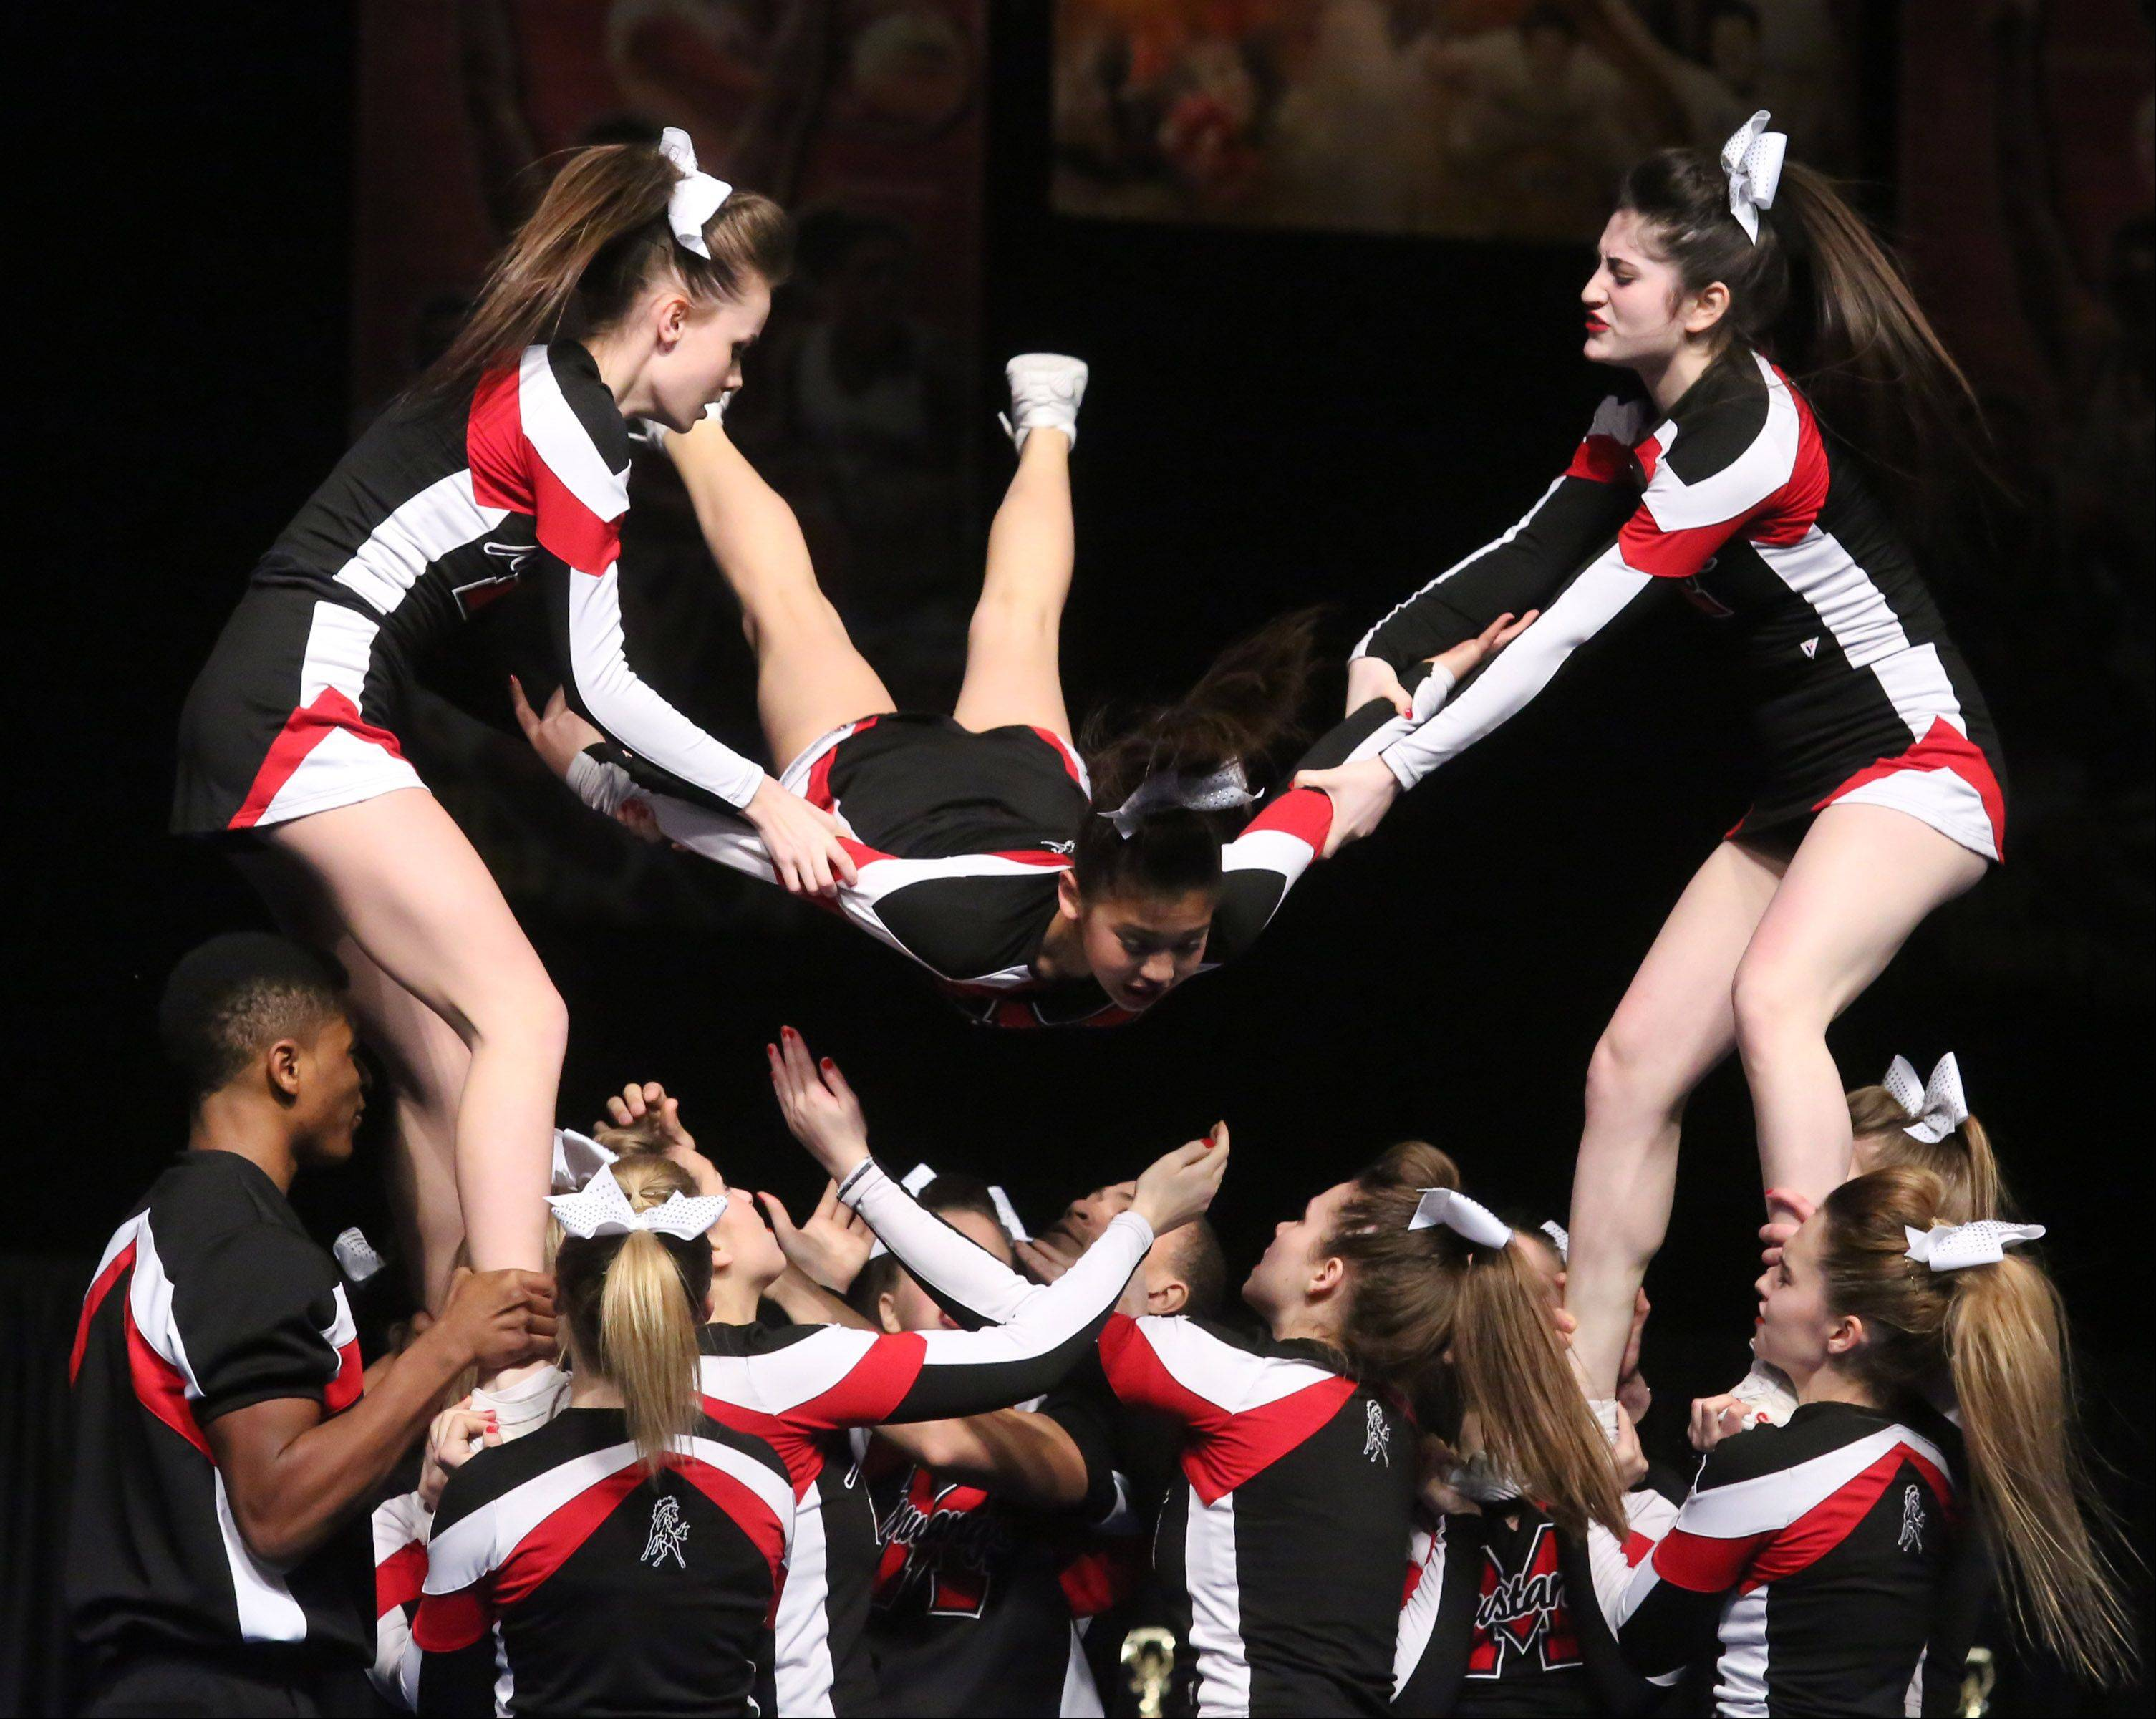 Mundelein High School's cheer team performs in the coed team category.